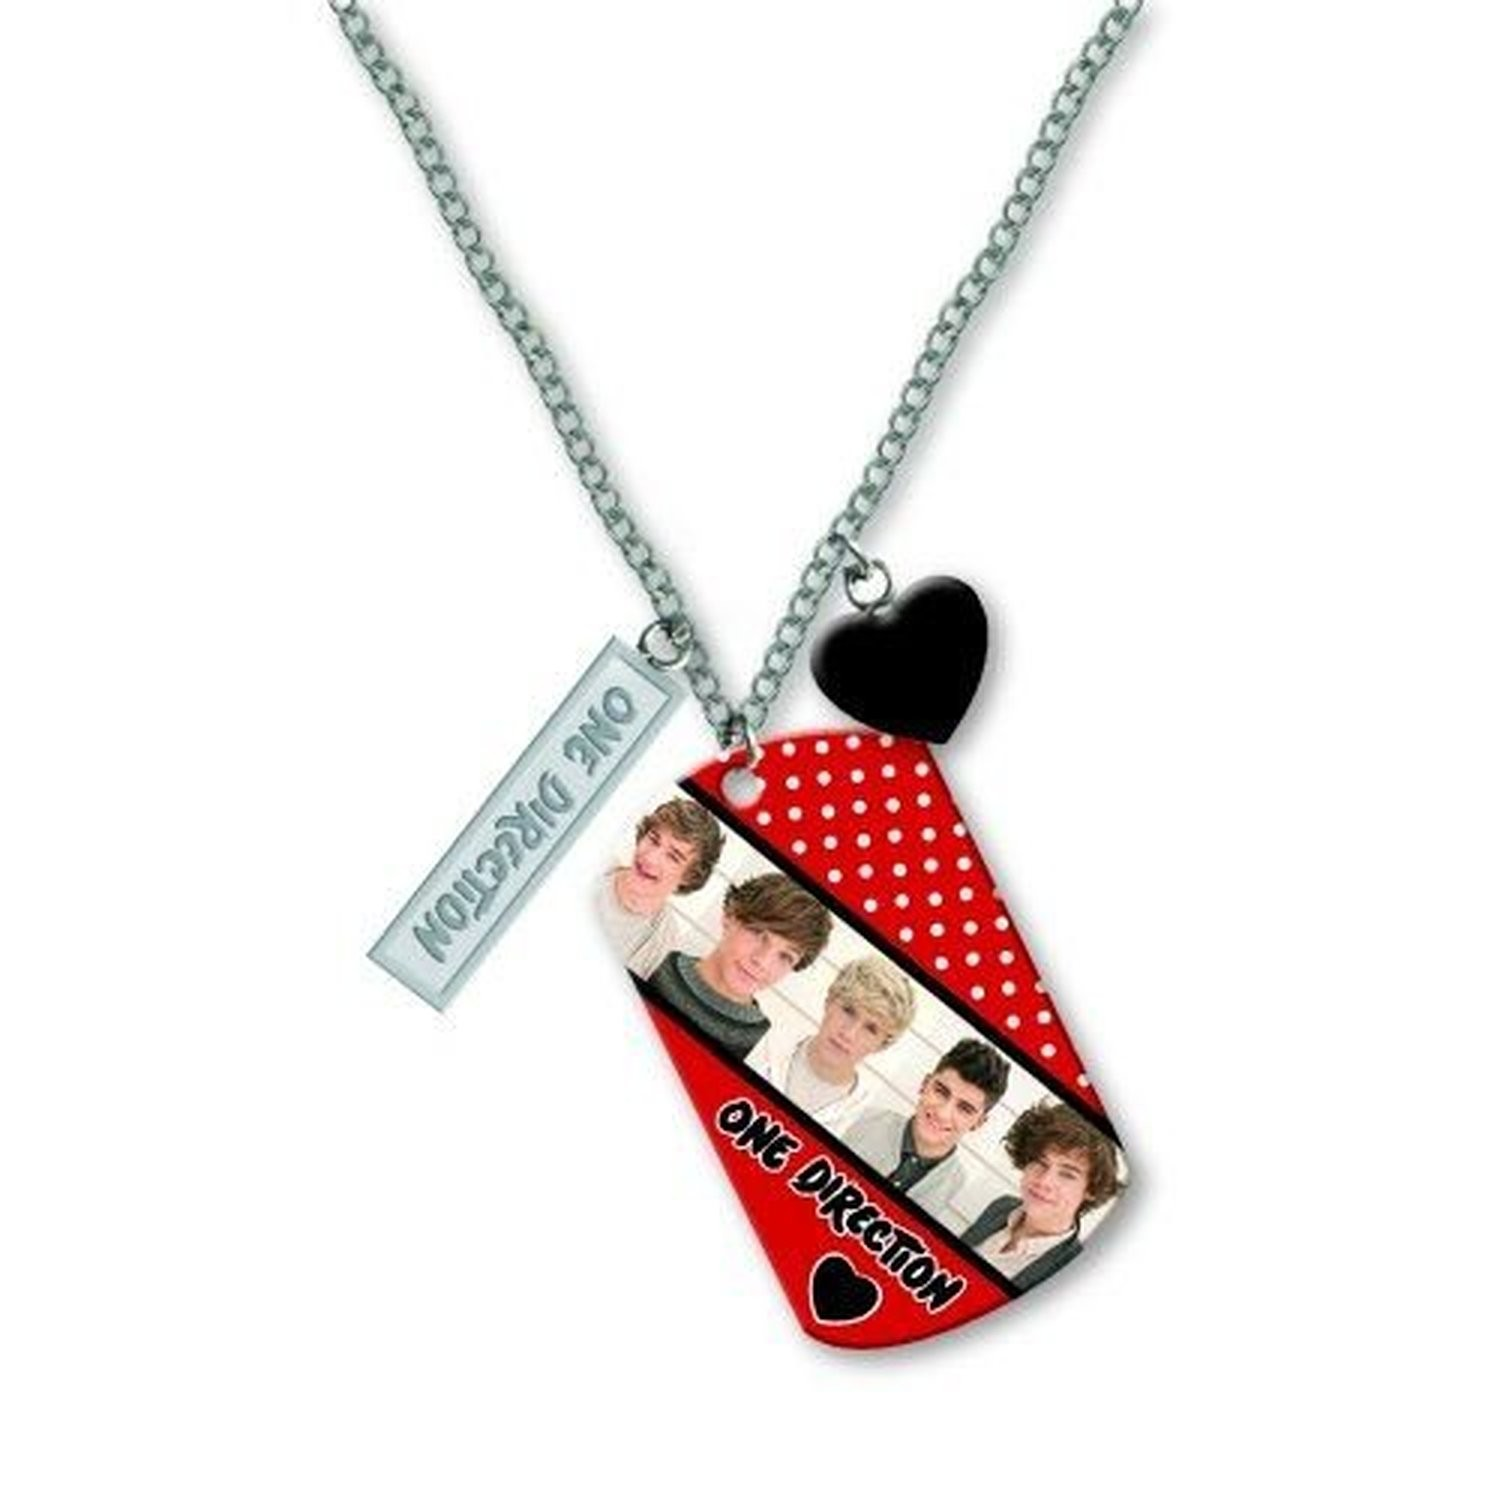 1D One Direction Dog Tags Necklace Chain Band Early Photo Heart Spotty Official